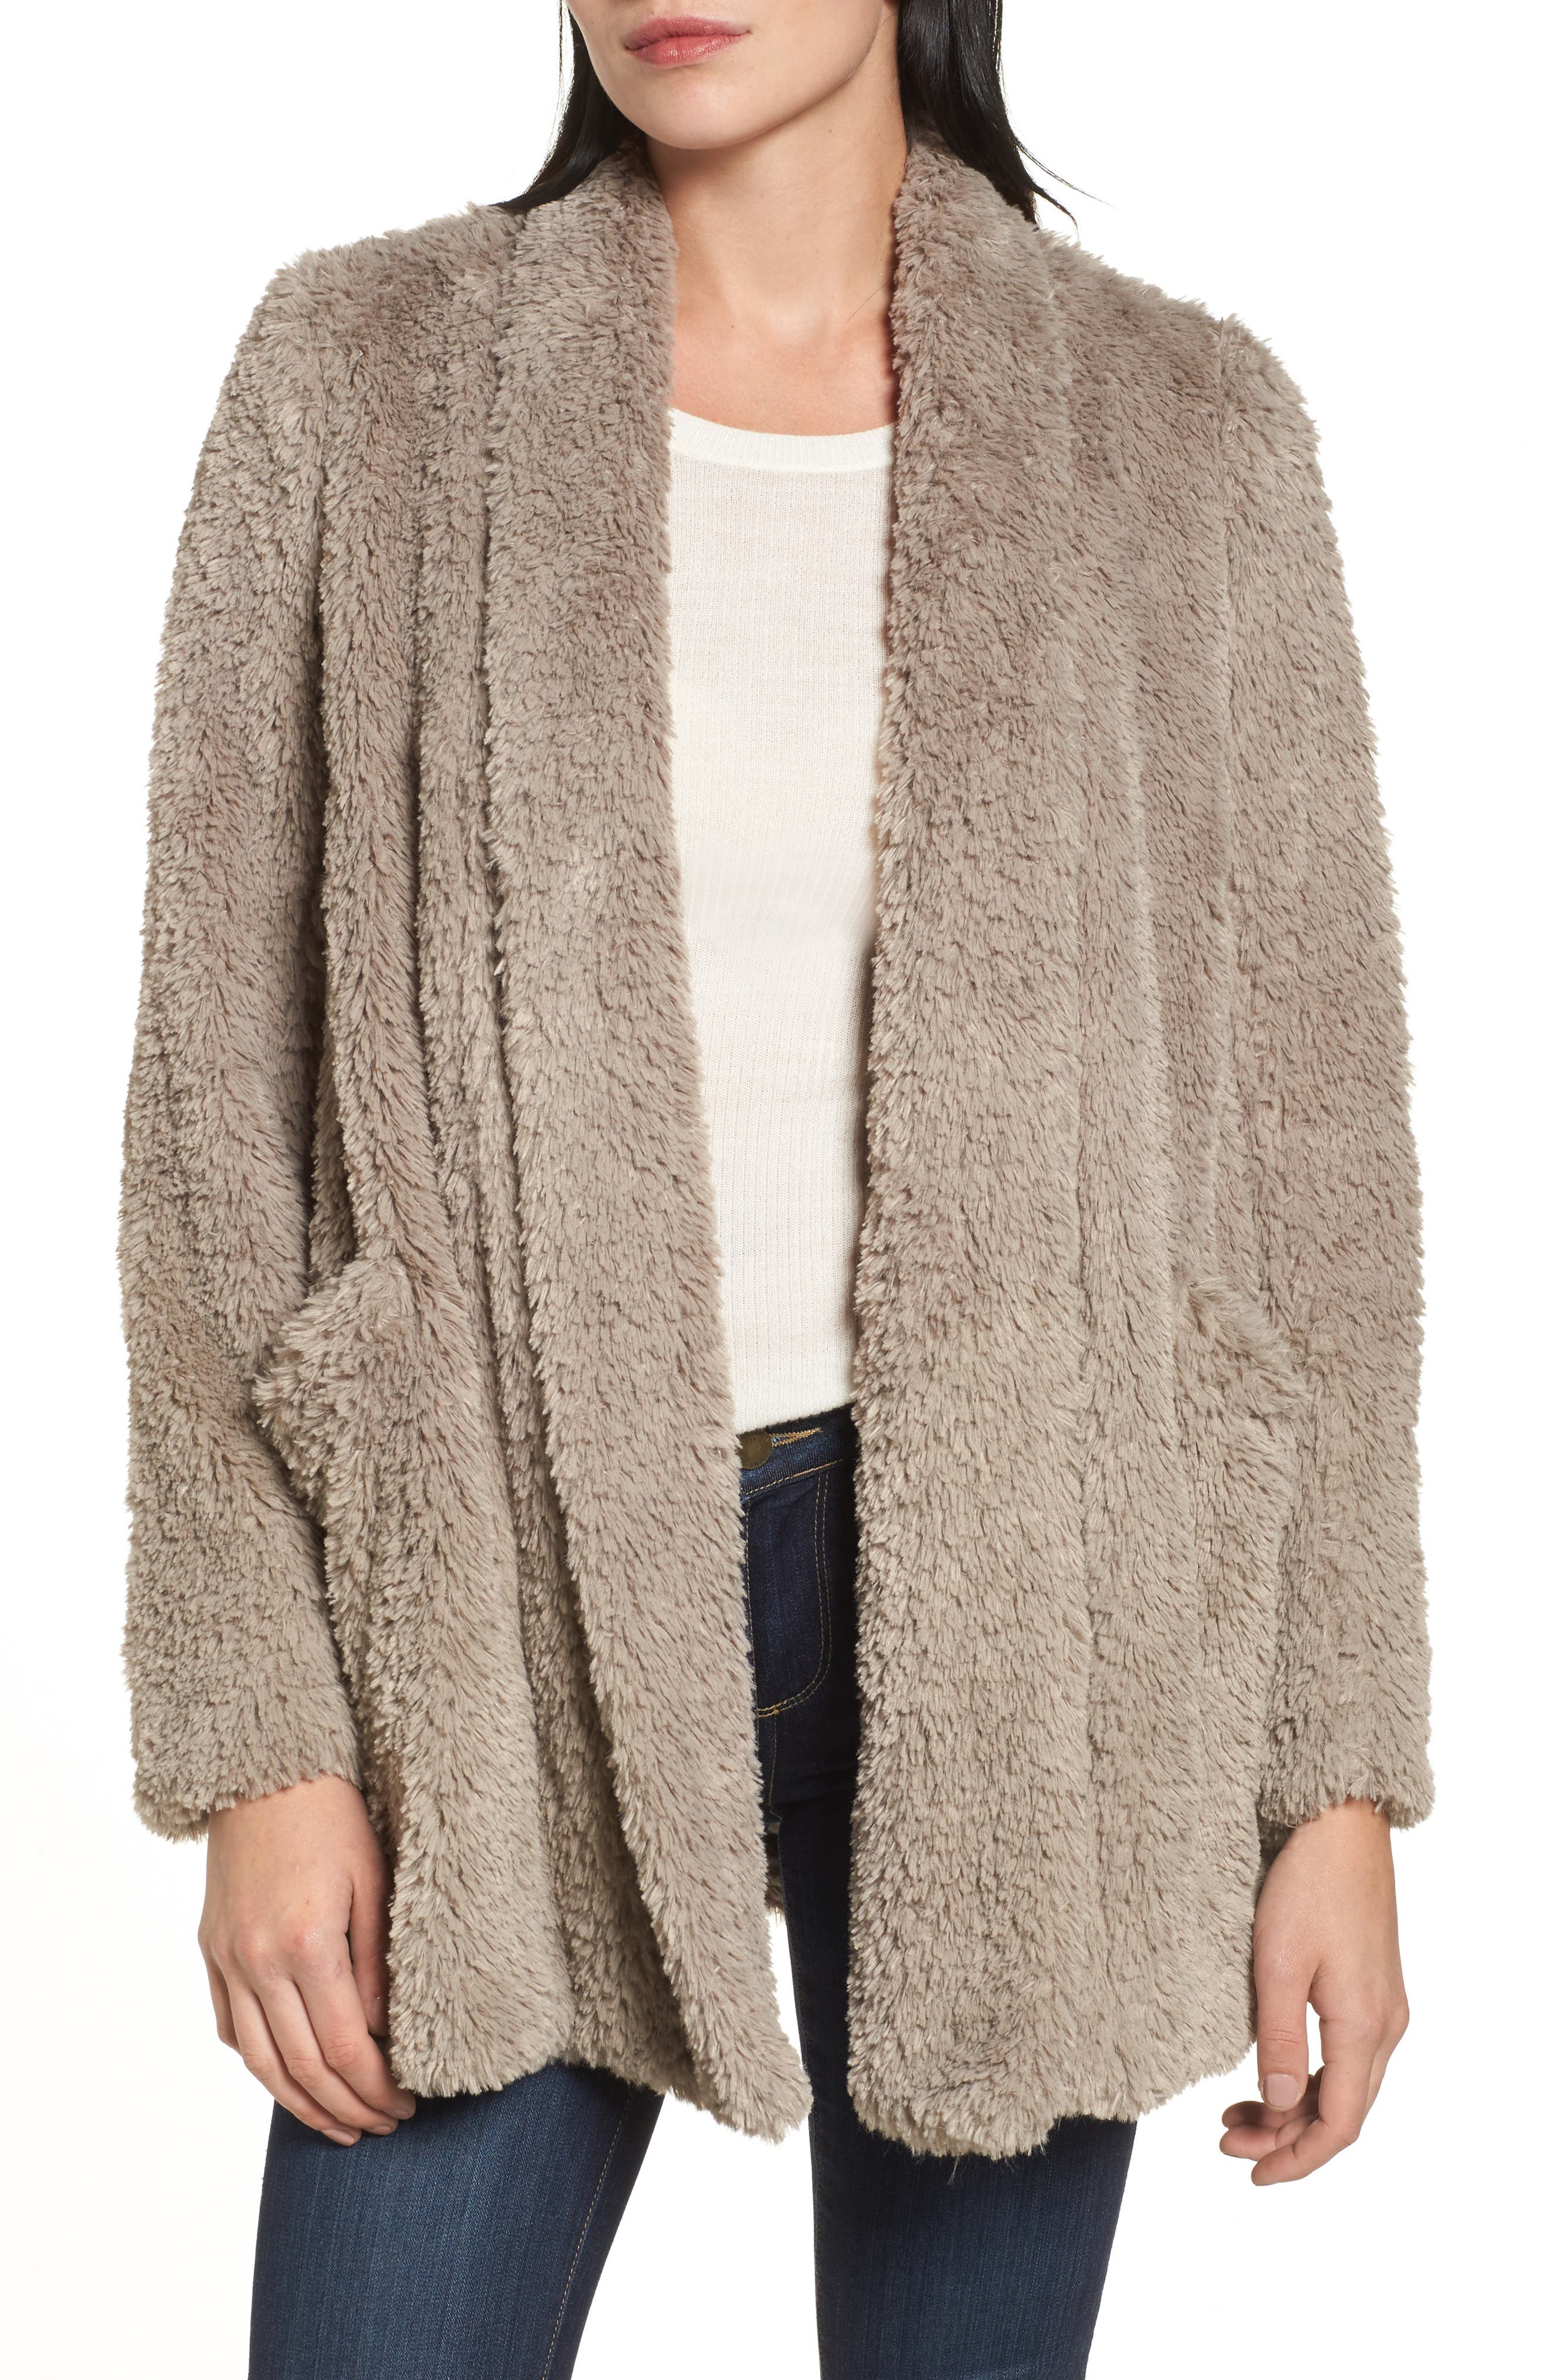 Kenneth Cole New York 'Teddy Bear' Faux Fur Clutch Coat